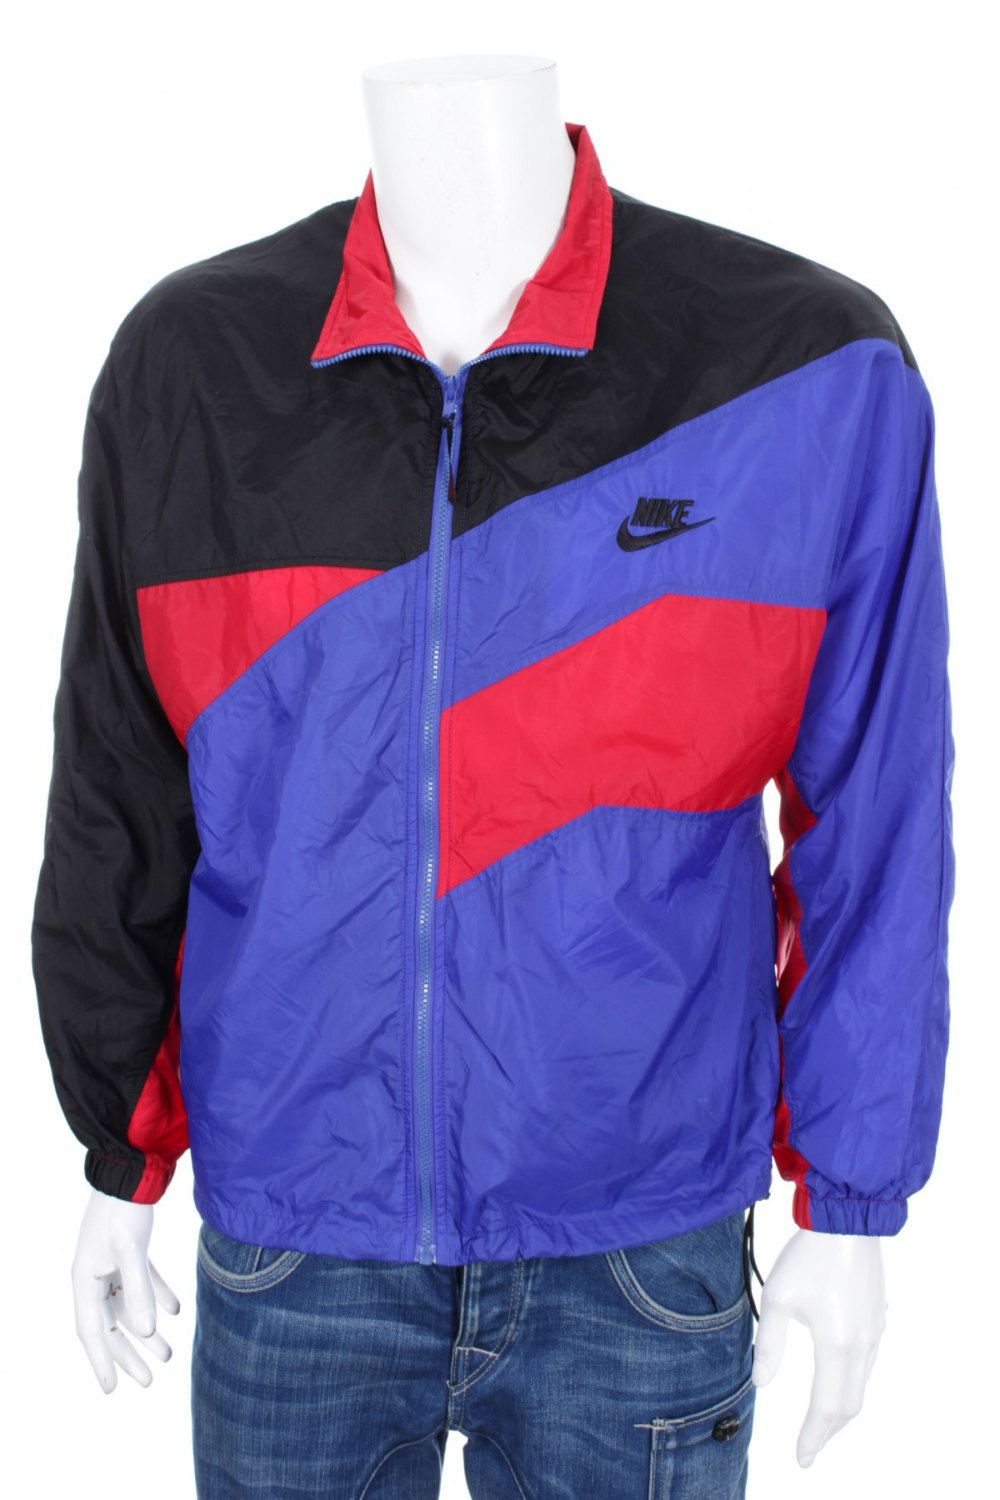 5e7dc6e44 Rare Vintage 90s Nike Windbreaker Track jacket Red Purple Black Color Block  Size M by VapeoVintage on Etsy